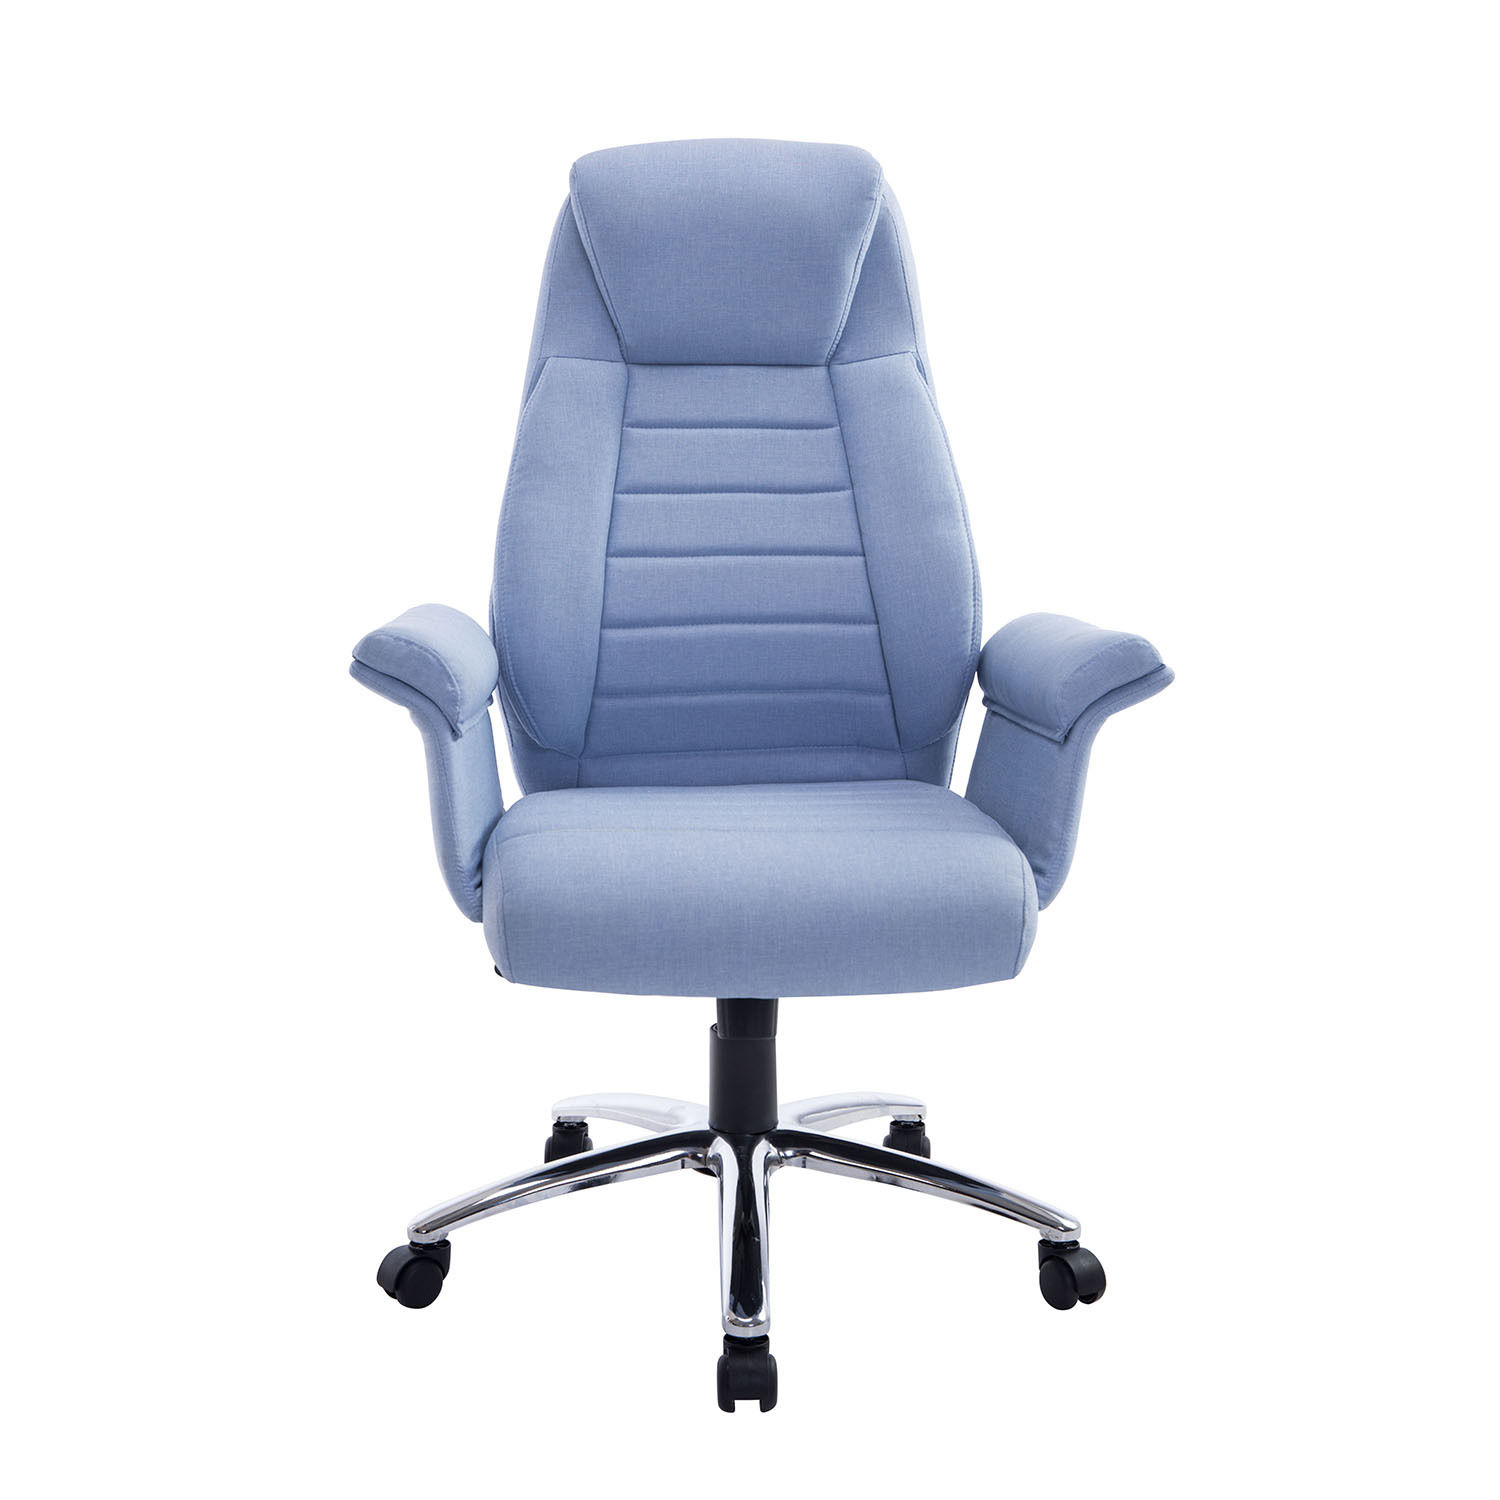 padded office chair royal blue slipper rolling executive high back swivel